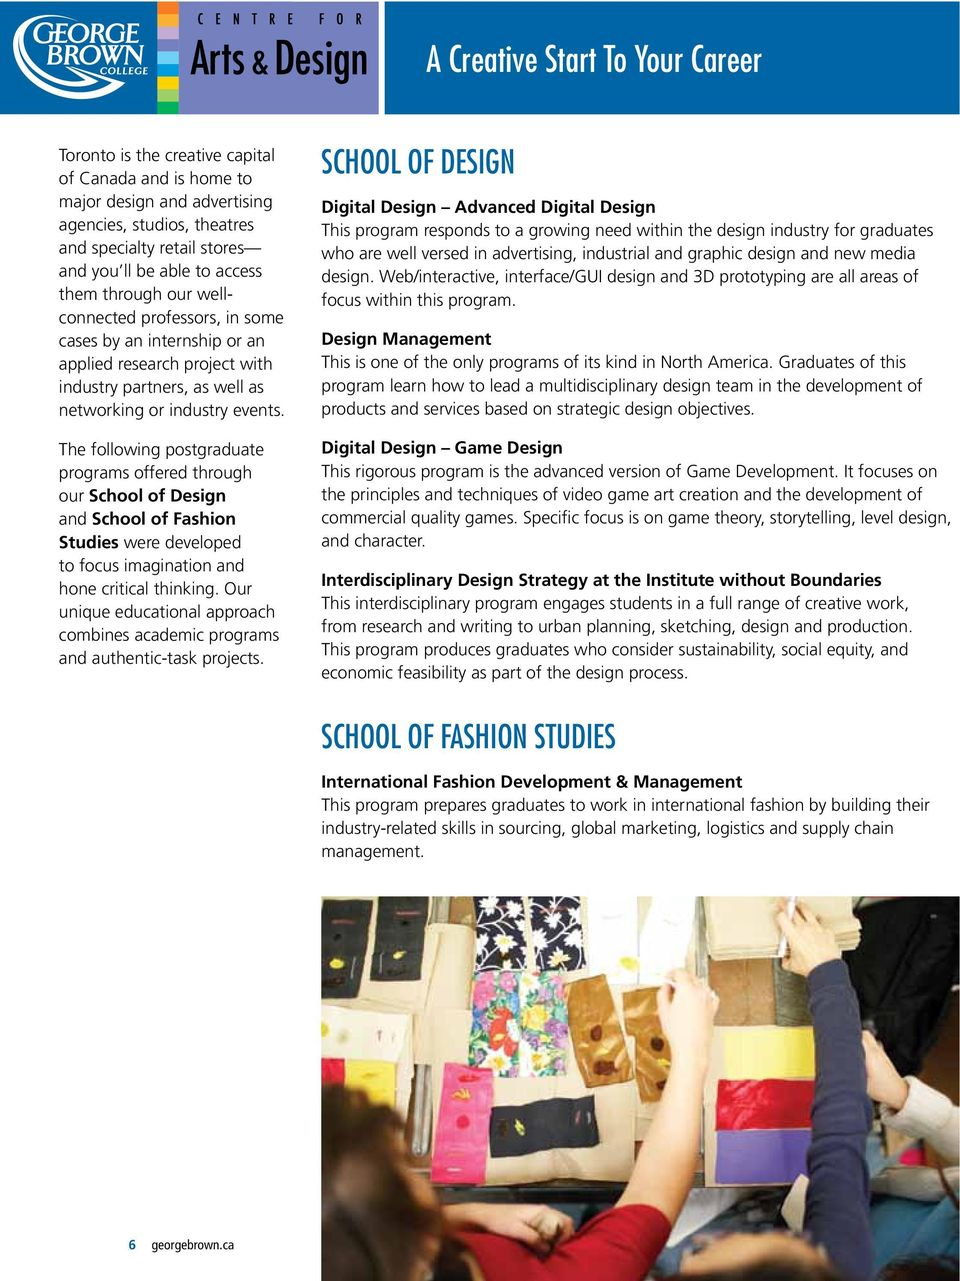 The following postgraduate programs offered through our School of Design and School of Fashion Studies were developed to focus imagination and hone critical thinking.